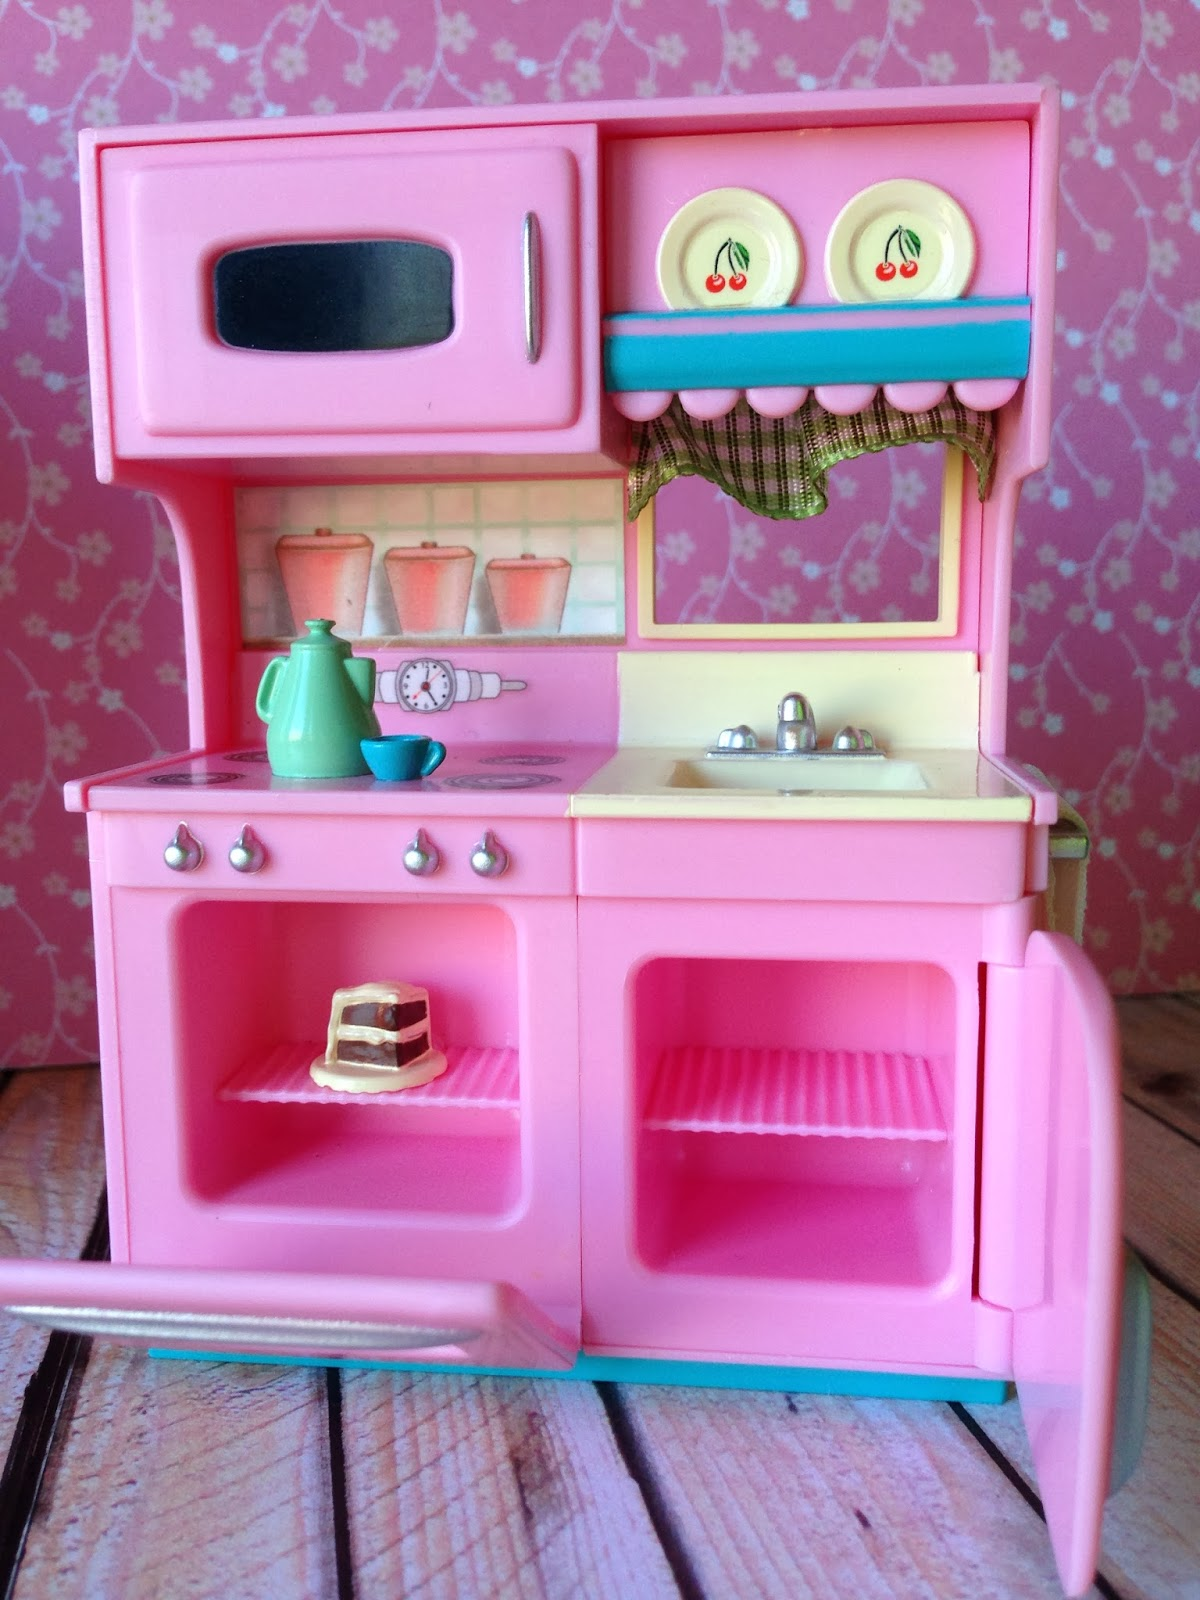 18 inch doll kitchen furniture once upon a doll collection bargain hunting at target wal mart